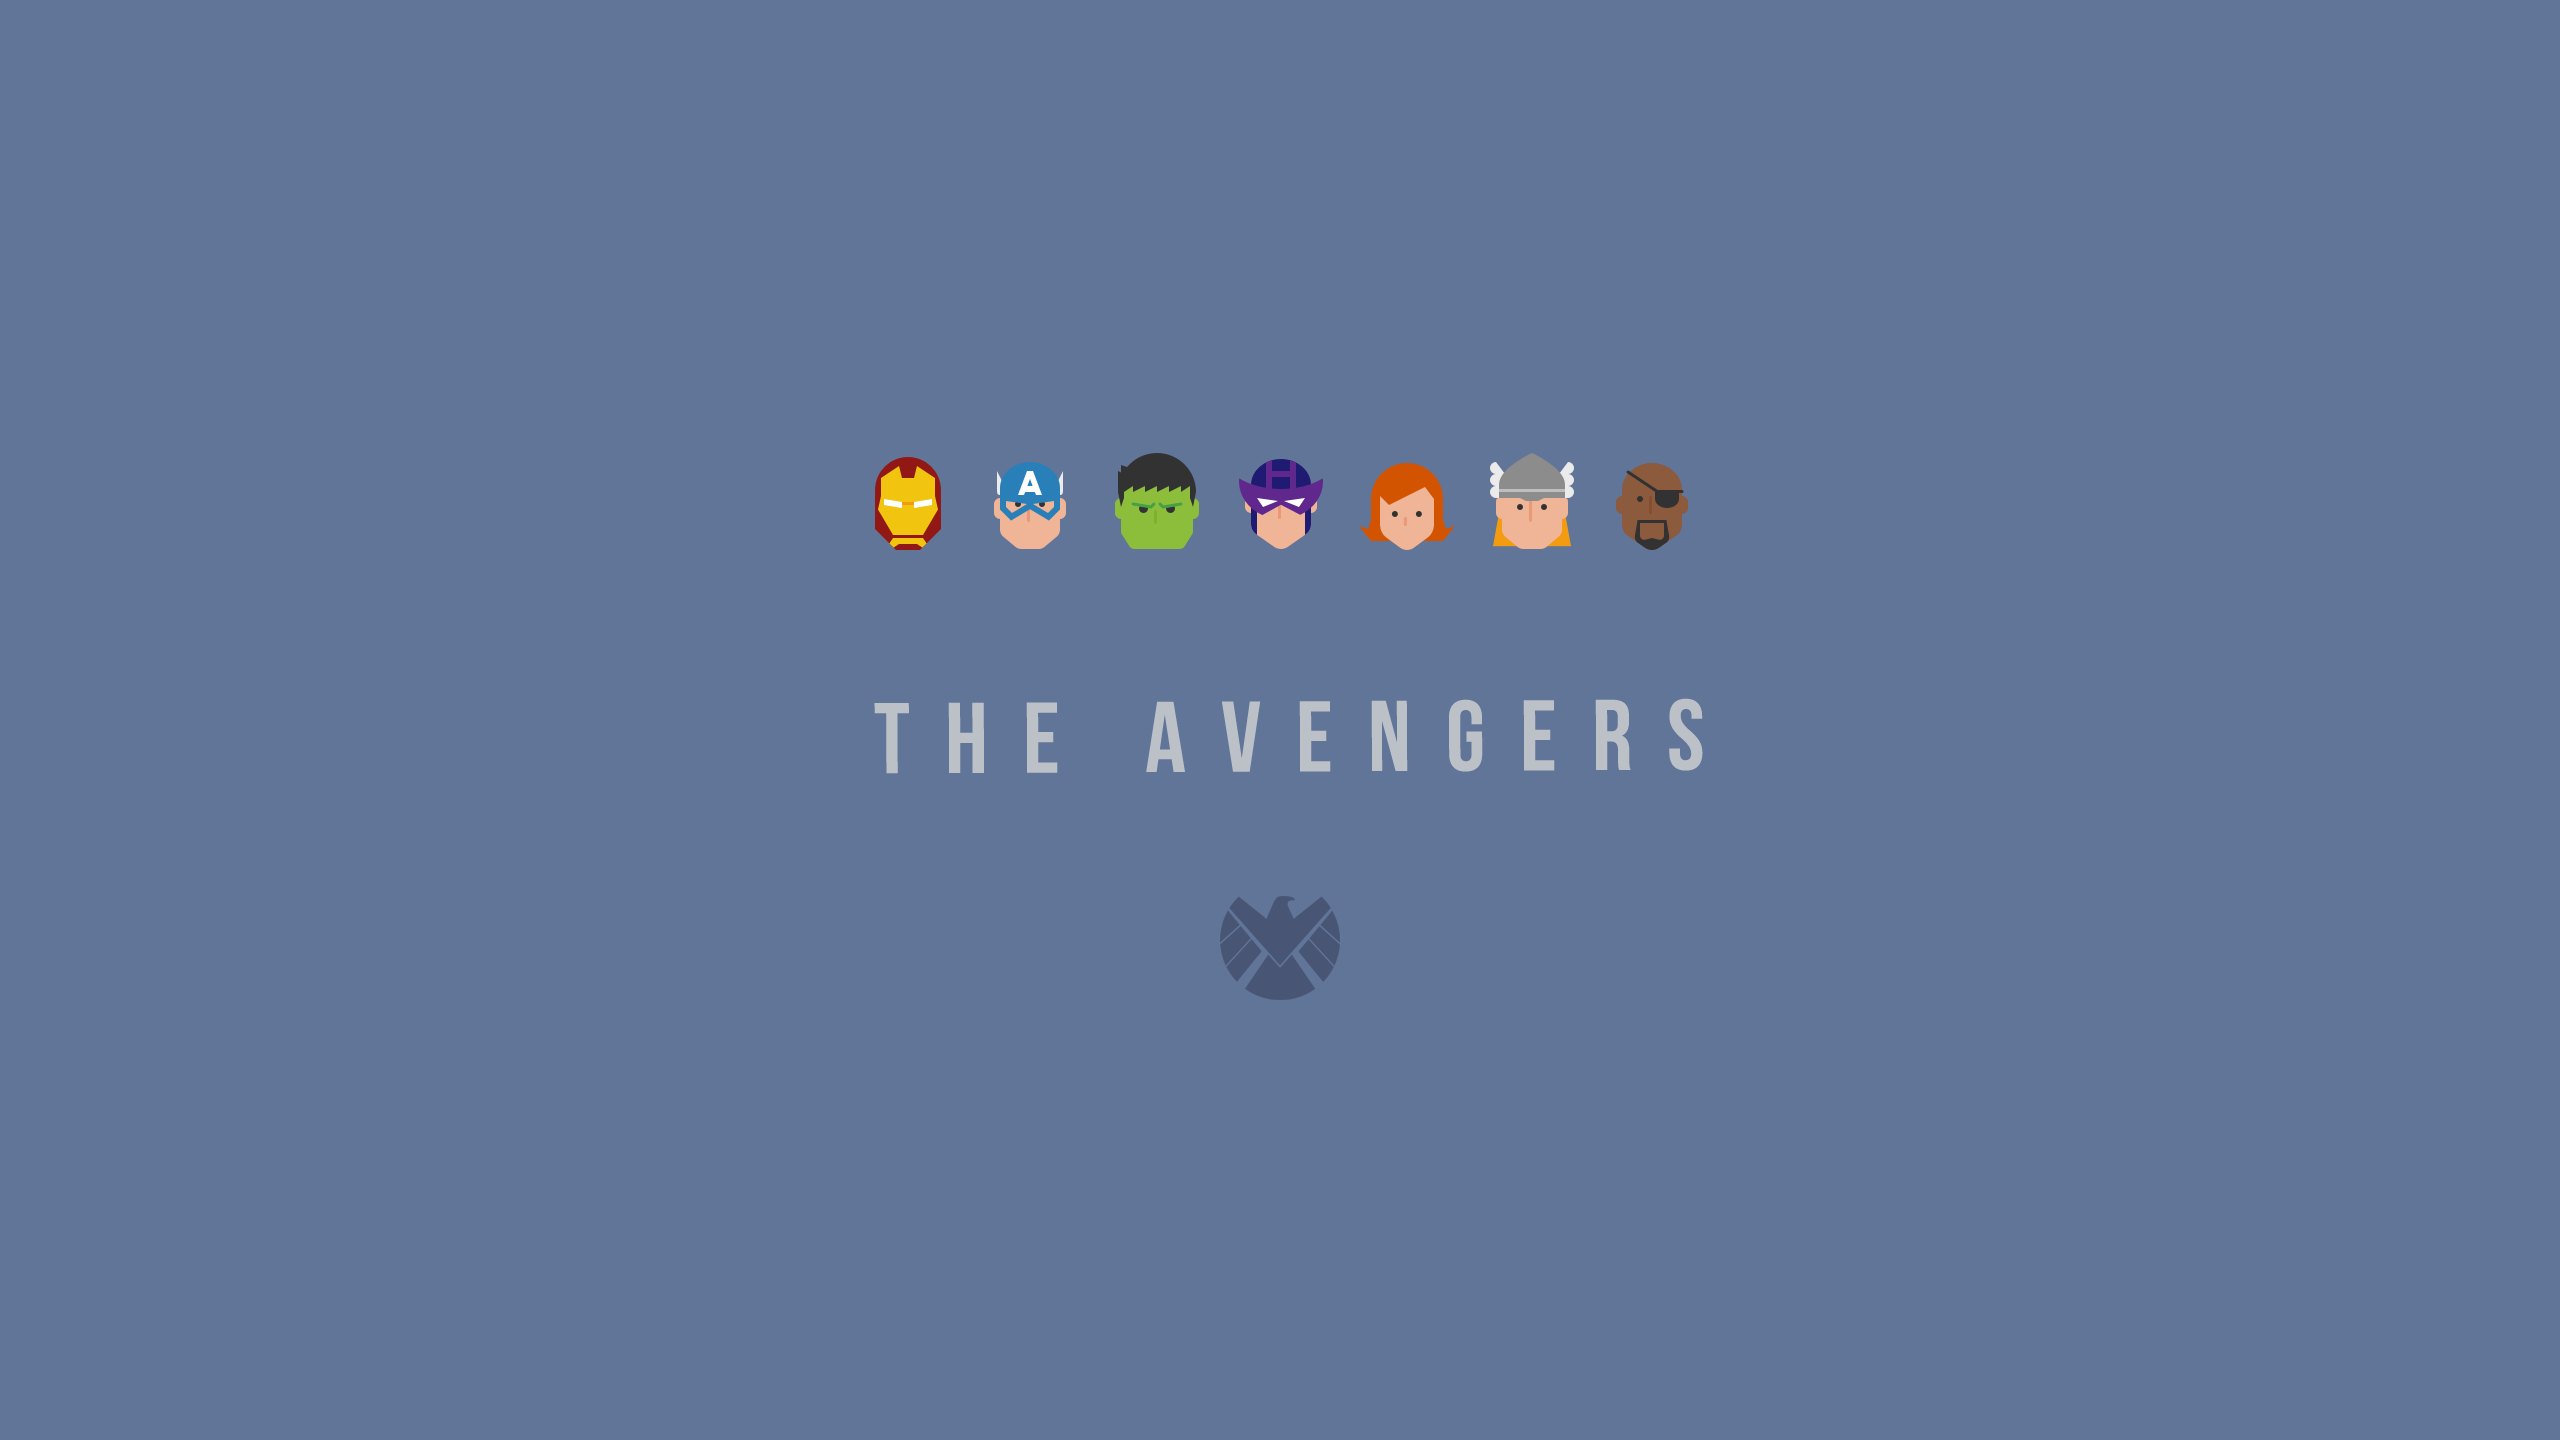 The Avengers - Agents of S.H.I.E.L.D.